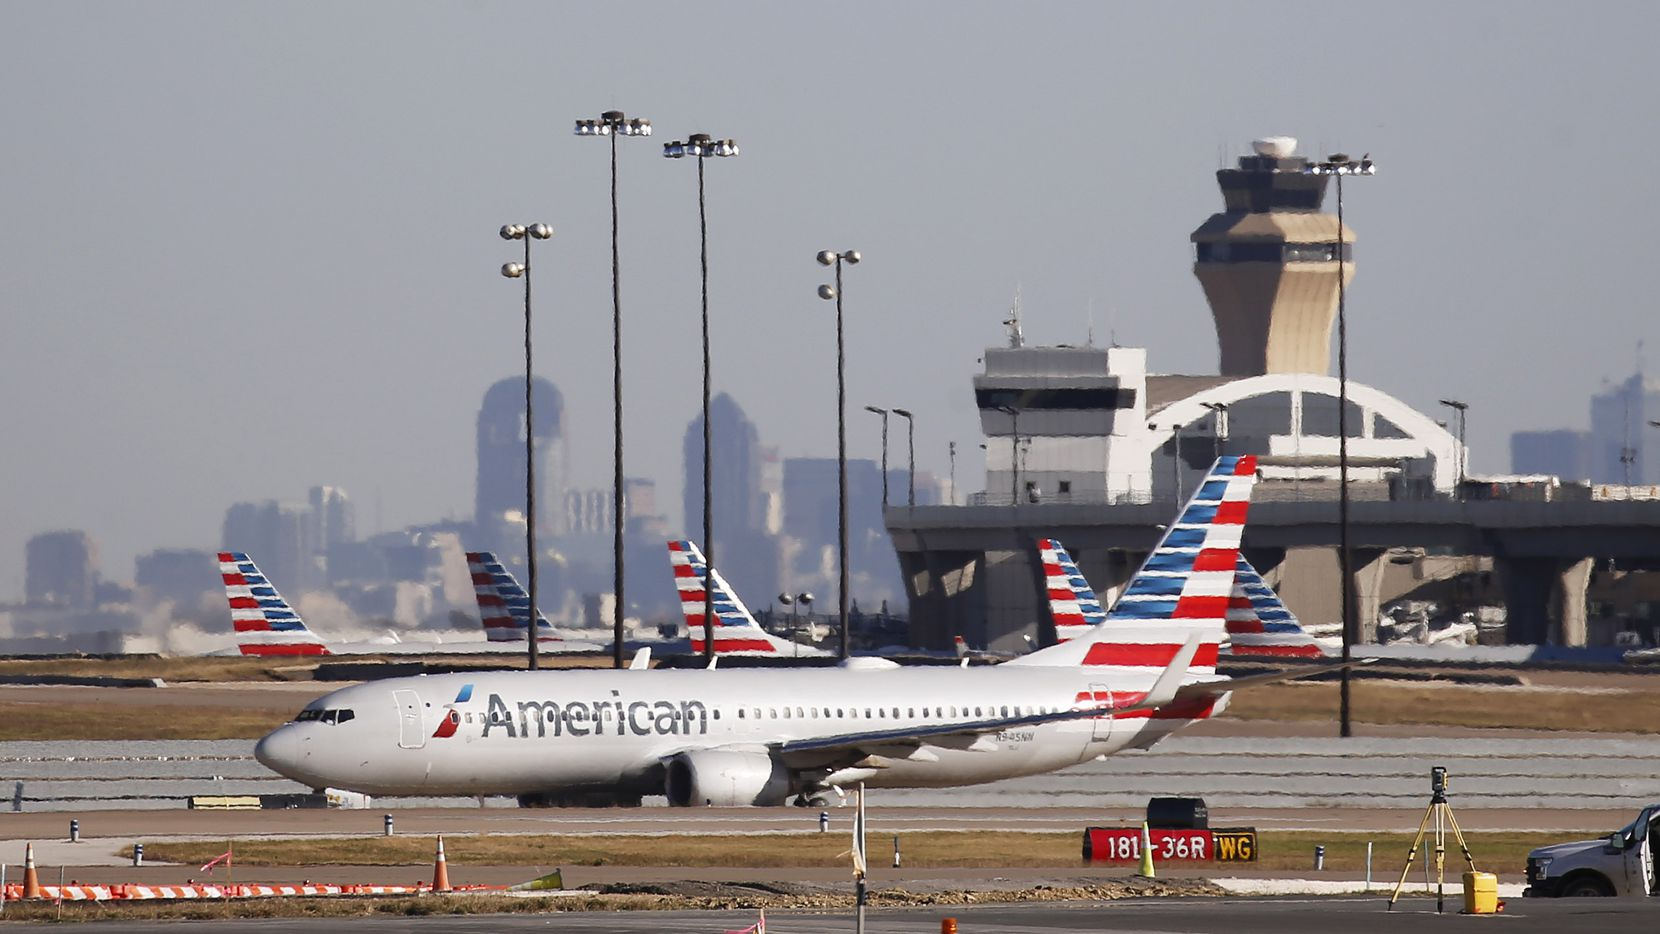 An American Airlines plane makes its way toward the runway before taking off at DFW International Airport on Monday, November 16, 2020.